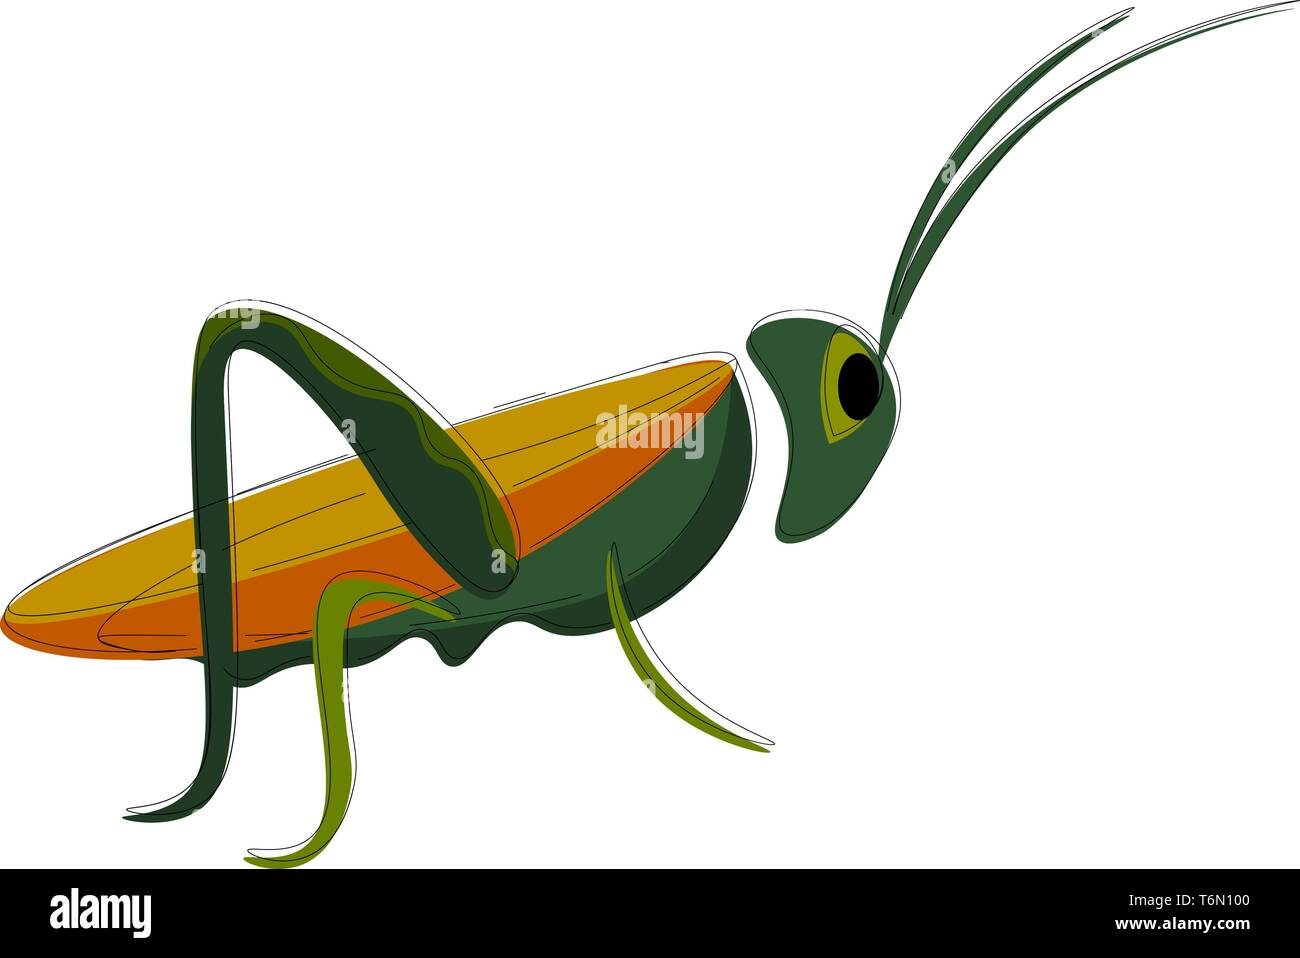 Grasshopper Vector Vectors Photos Grasshopper Vector